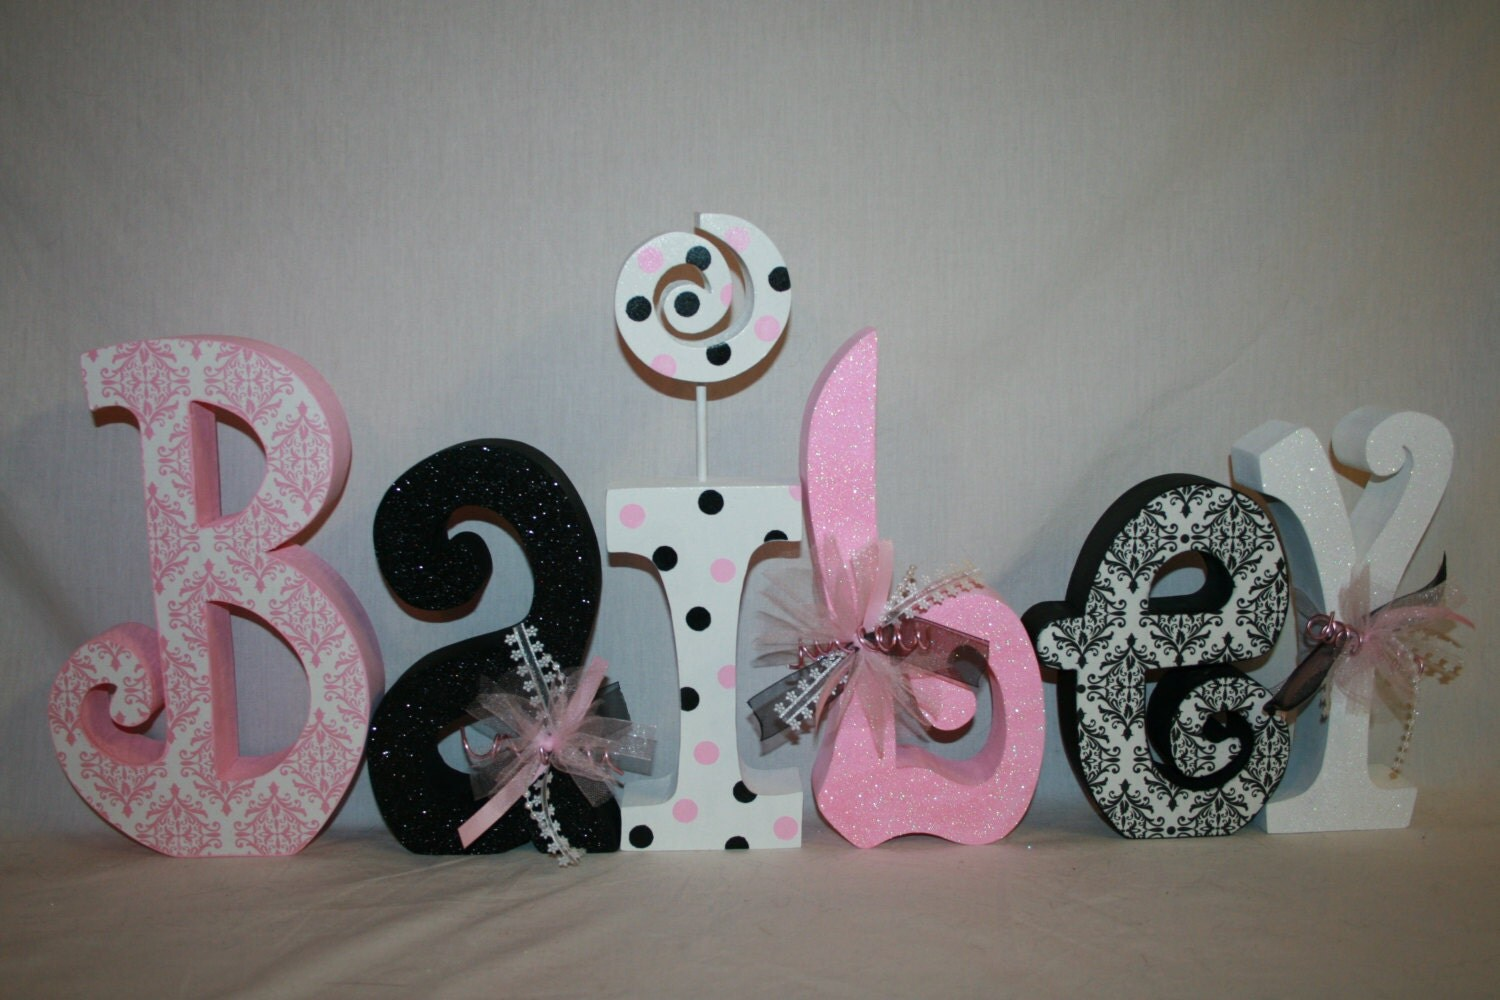 Baby girl nursery decor 6 letter set pink and black decor for Baby name letters decoration